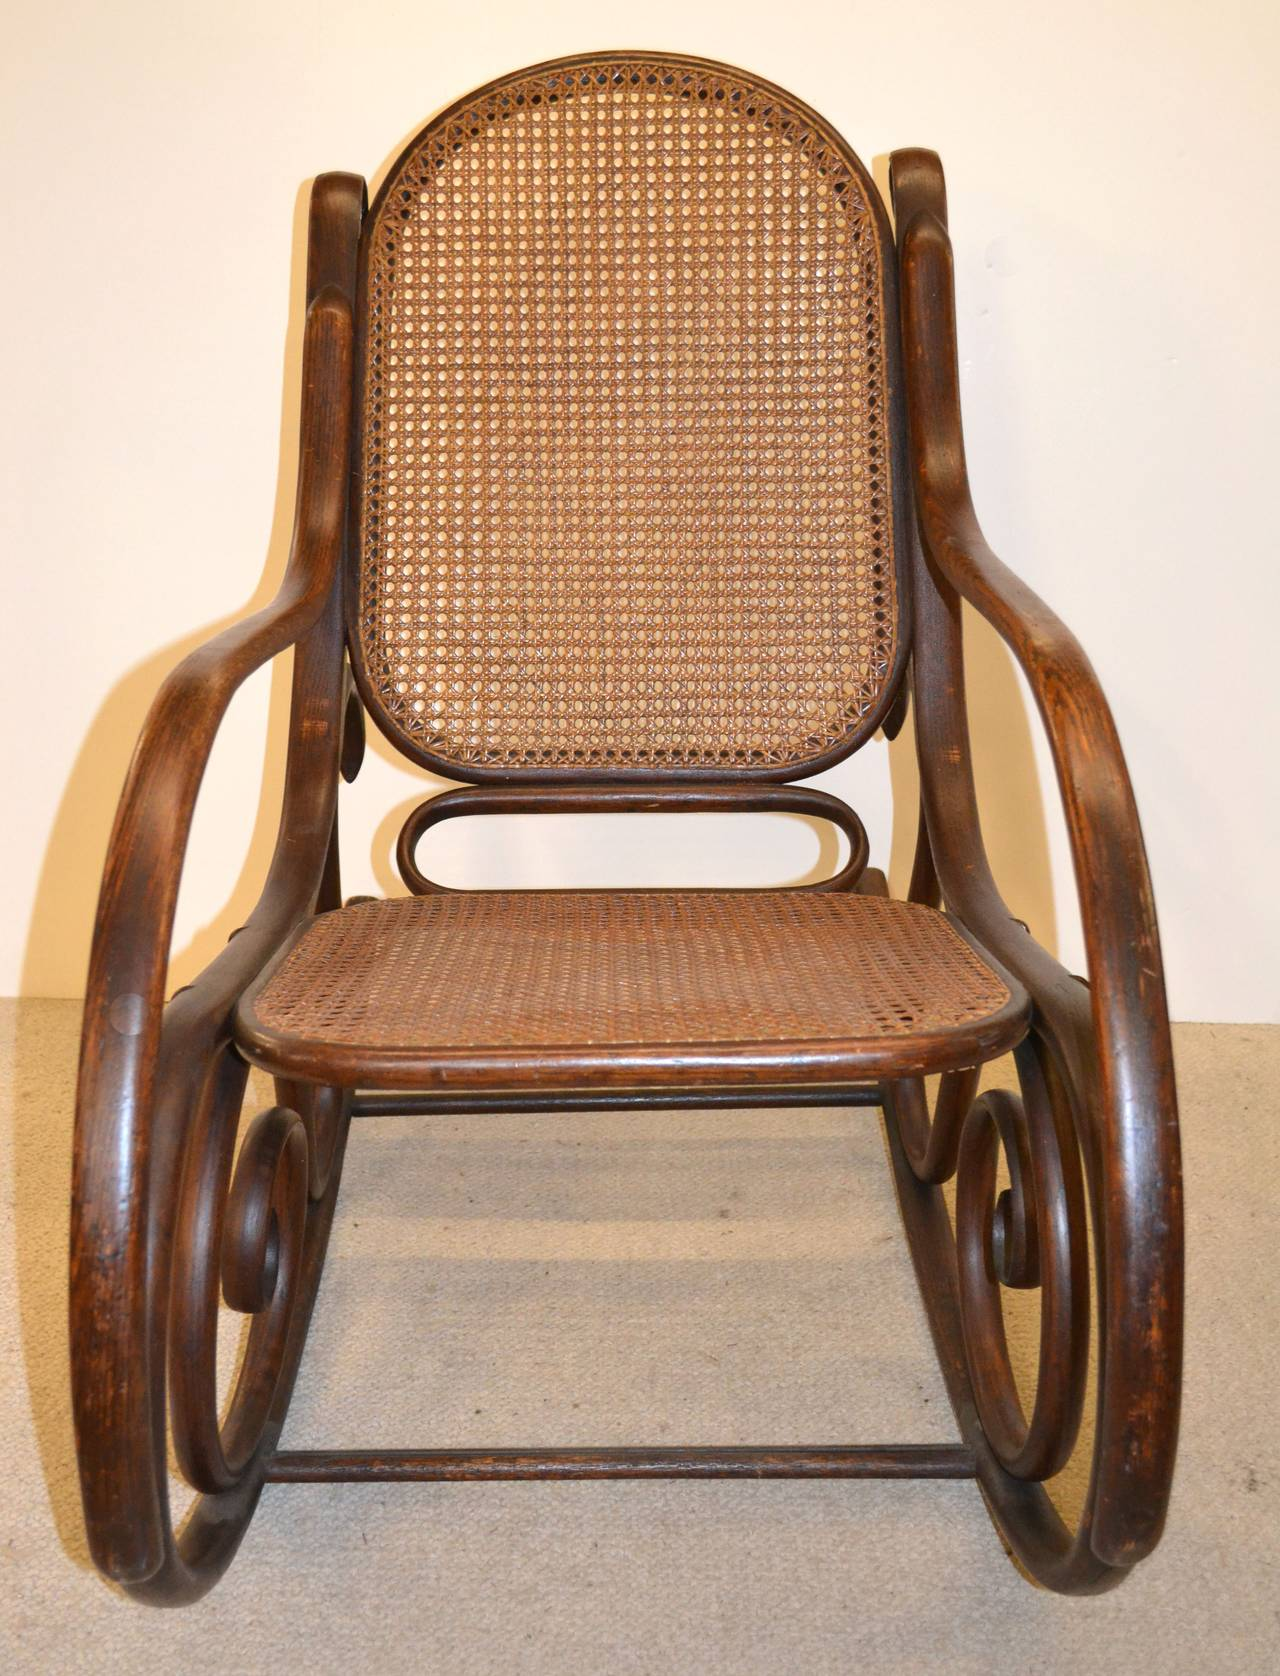 Original white painted bentwood rocking chair is no longer available - 19th Century Thonet Bentwood Rocker Chair 2